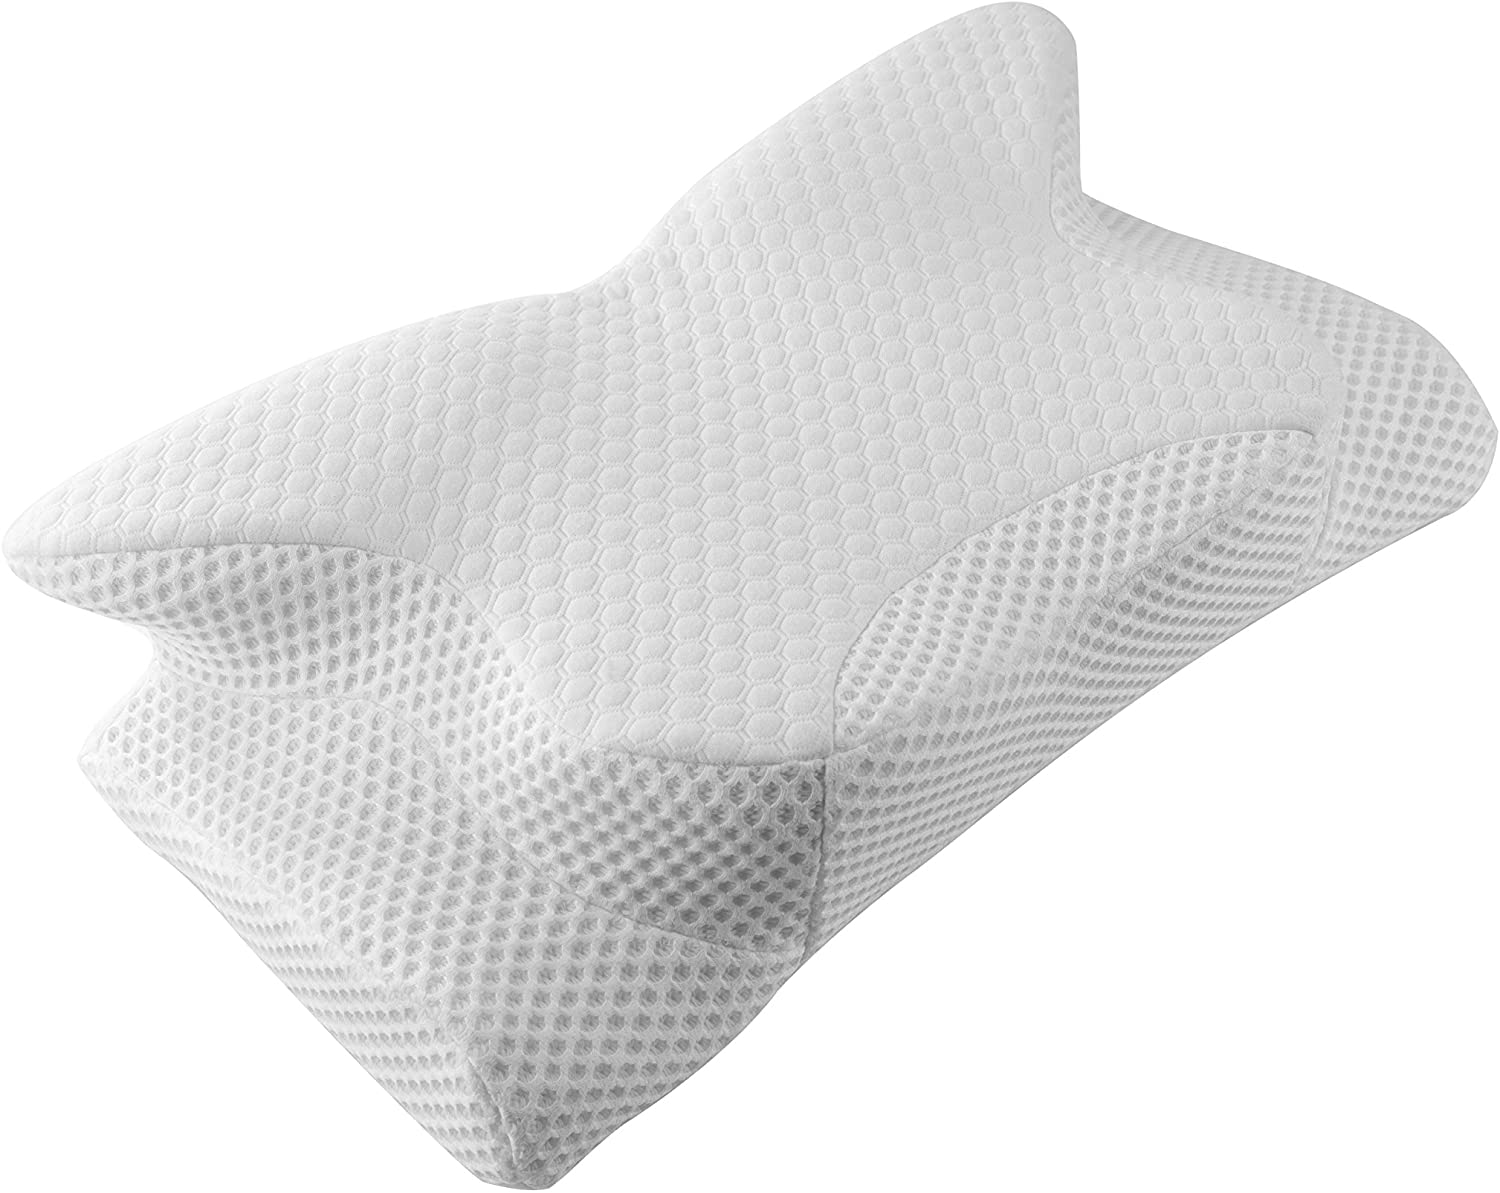 top cpap pillows to use in 2020